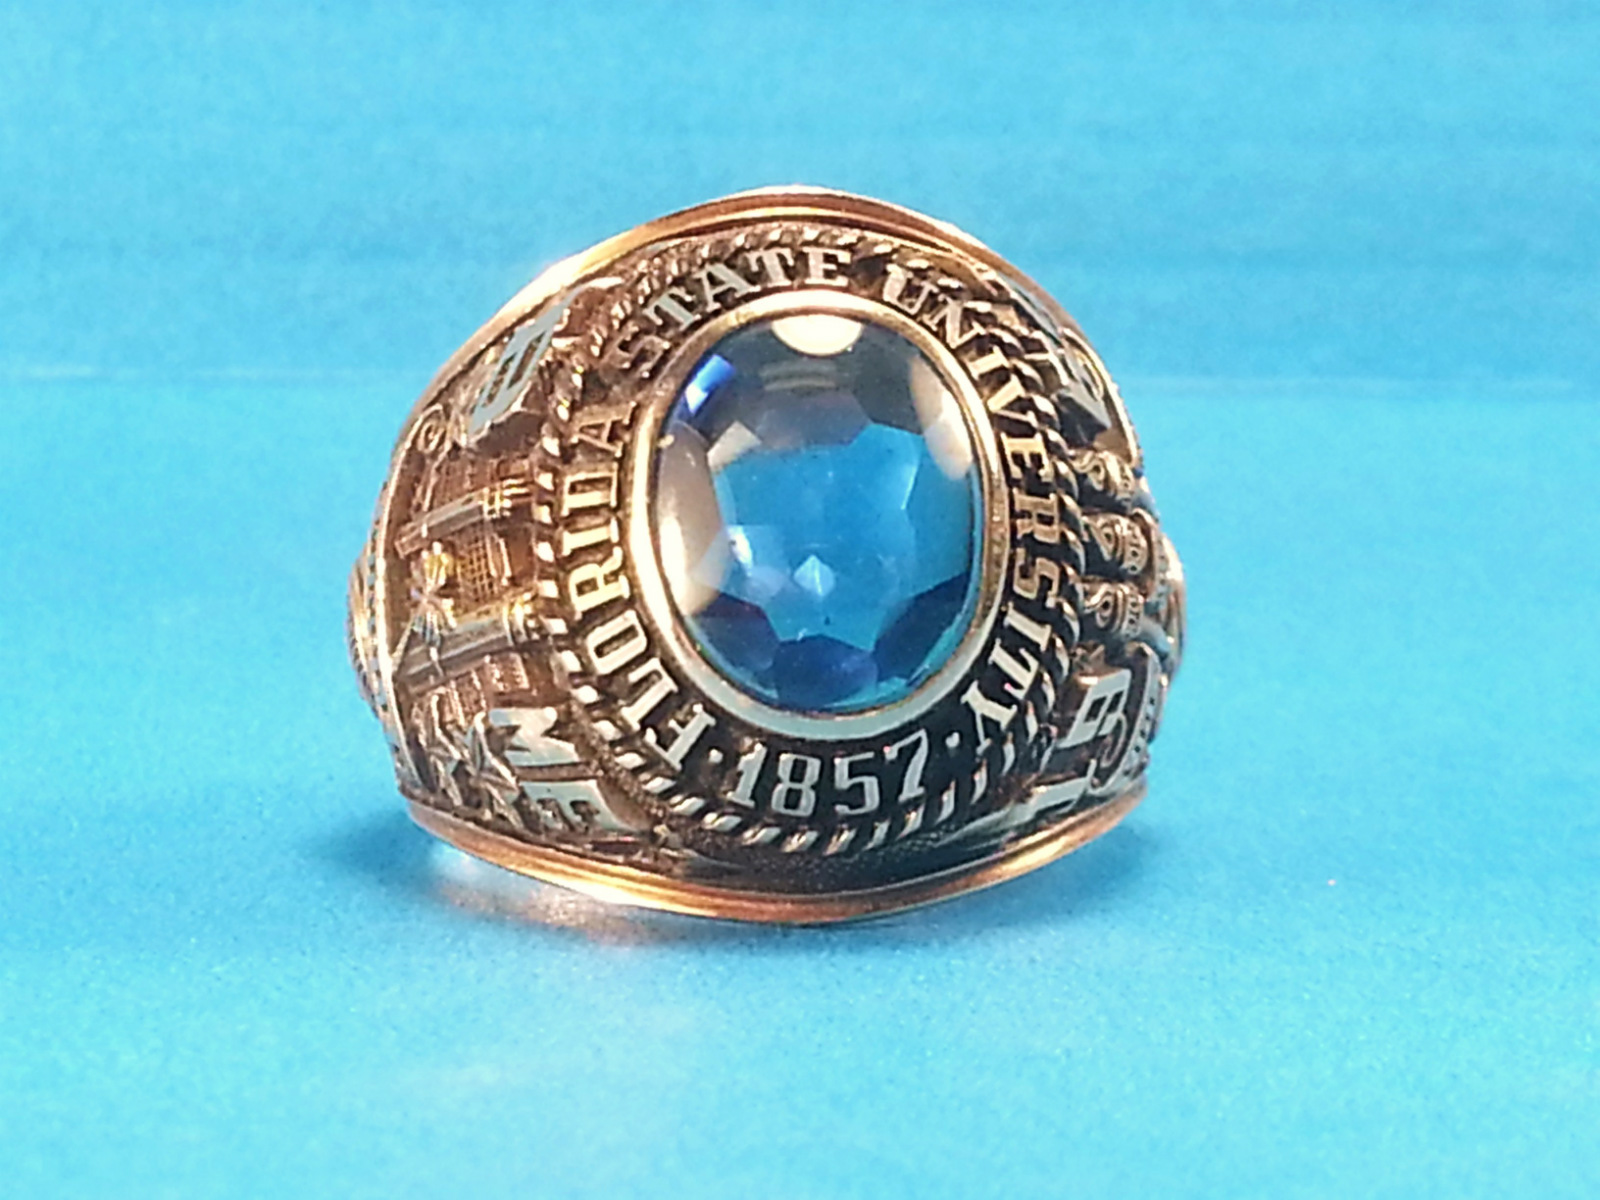 class ring Jewelryweb sterling silver class ring charm measures 11mm in diameter - 3mm blue crystal sold by jewelrywebcom college class rings & marketplace (500+) only.